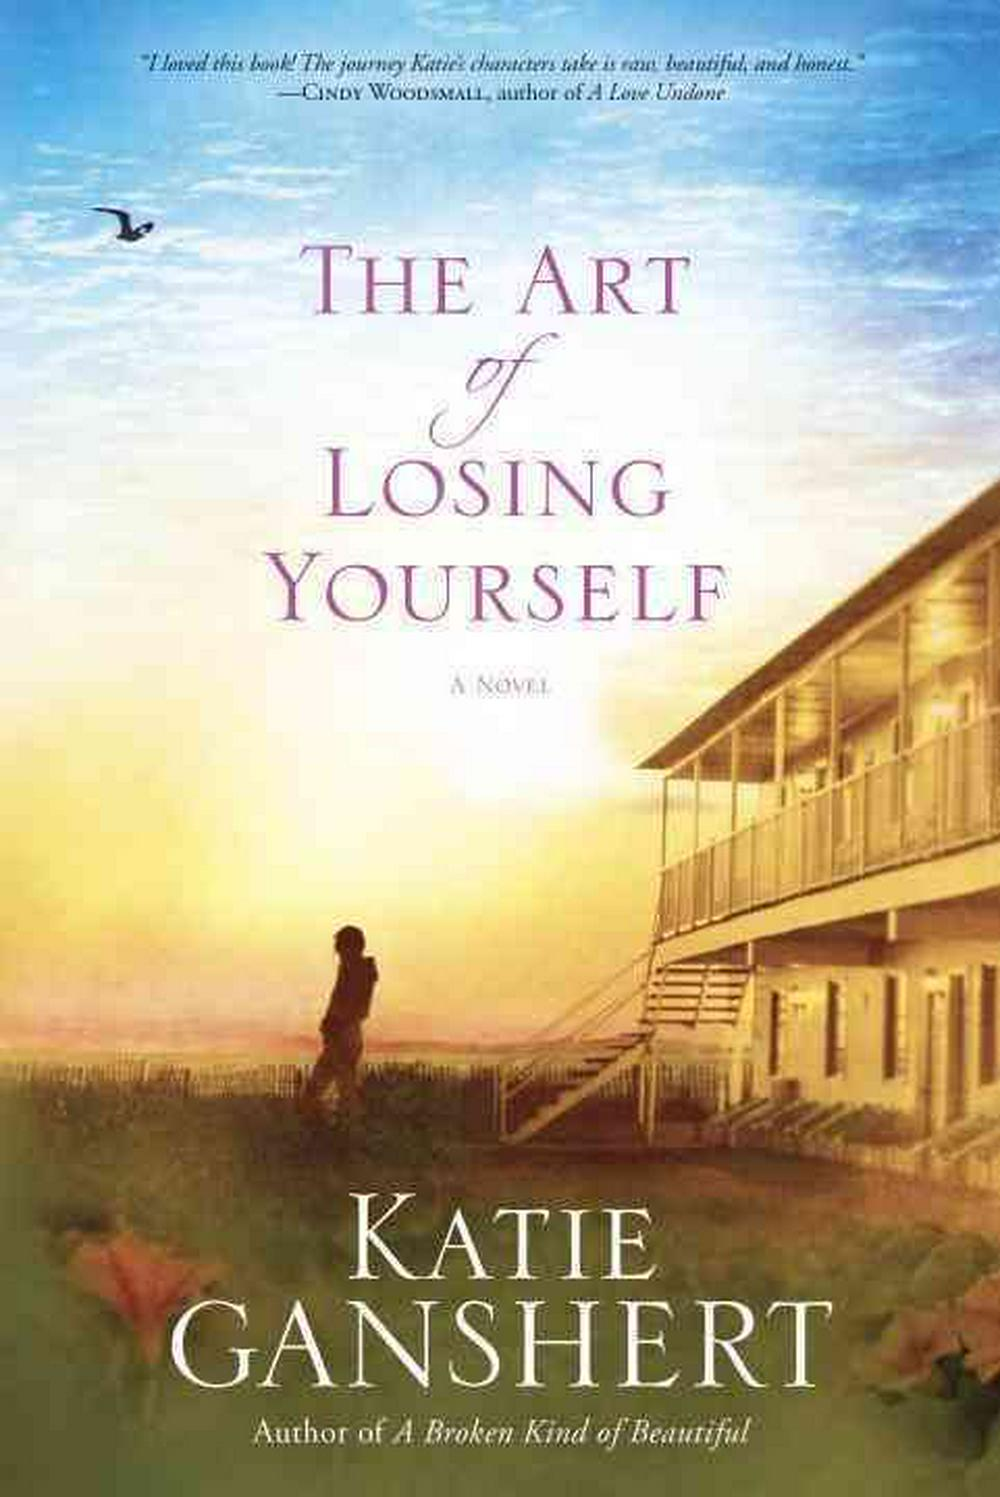 The Art of Losing Yourself: A Novel by Katie Ganshert, ISBN: 9781601425928